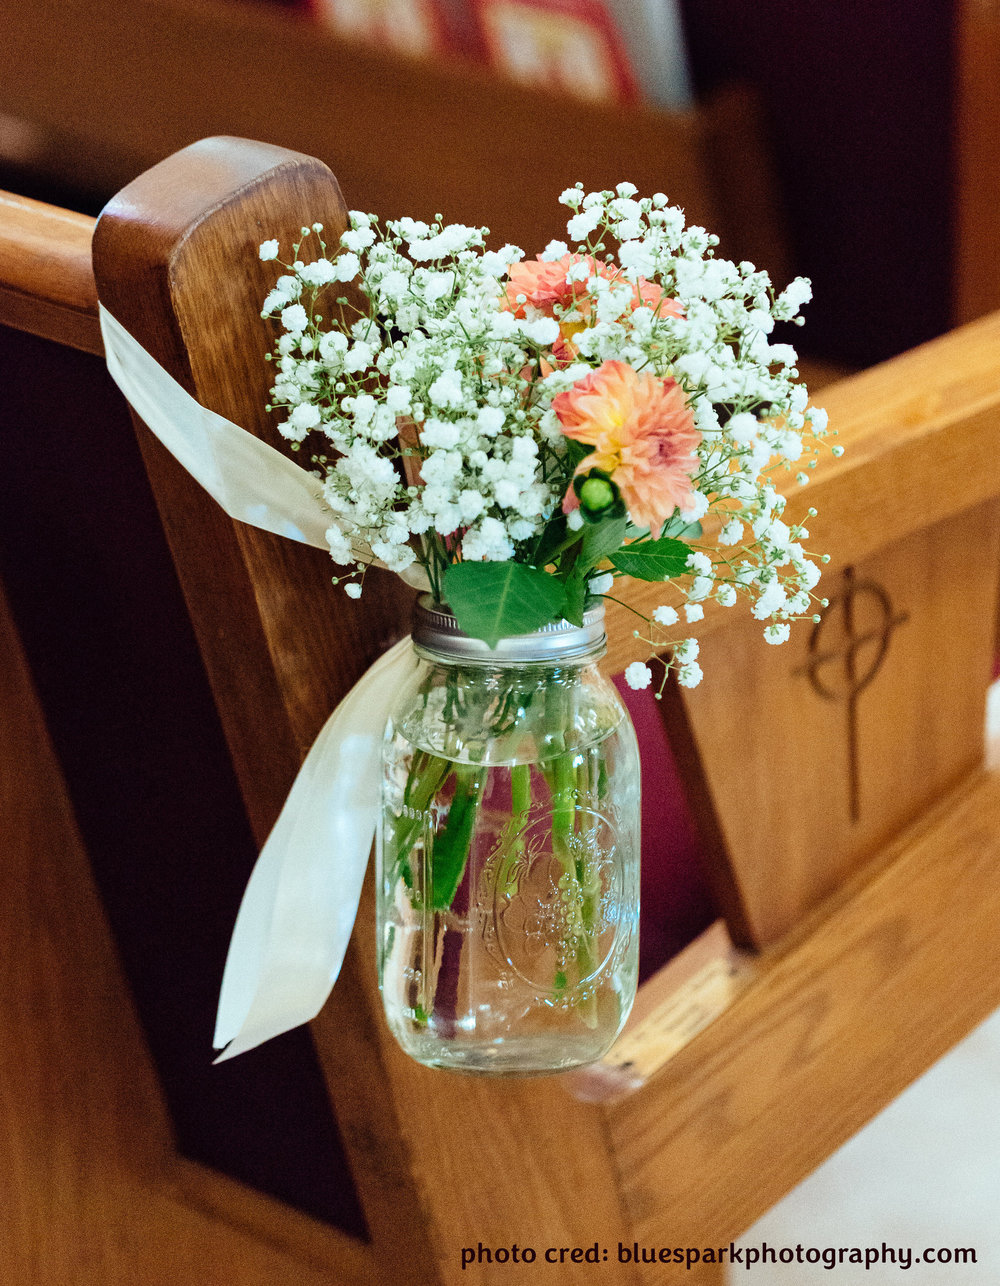 AISLE DECOR & ARRANGEMENTS - $25 – $75+